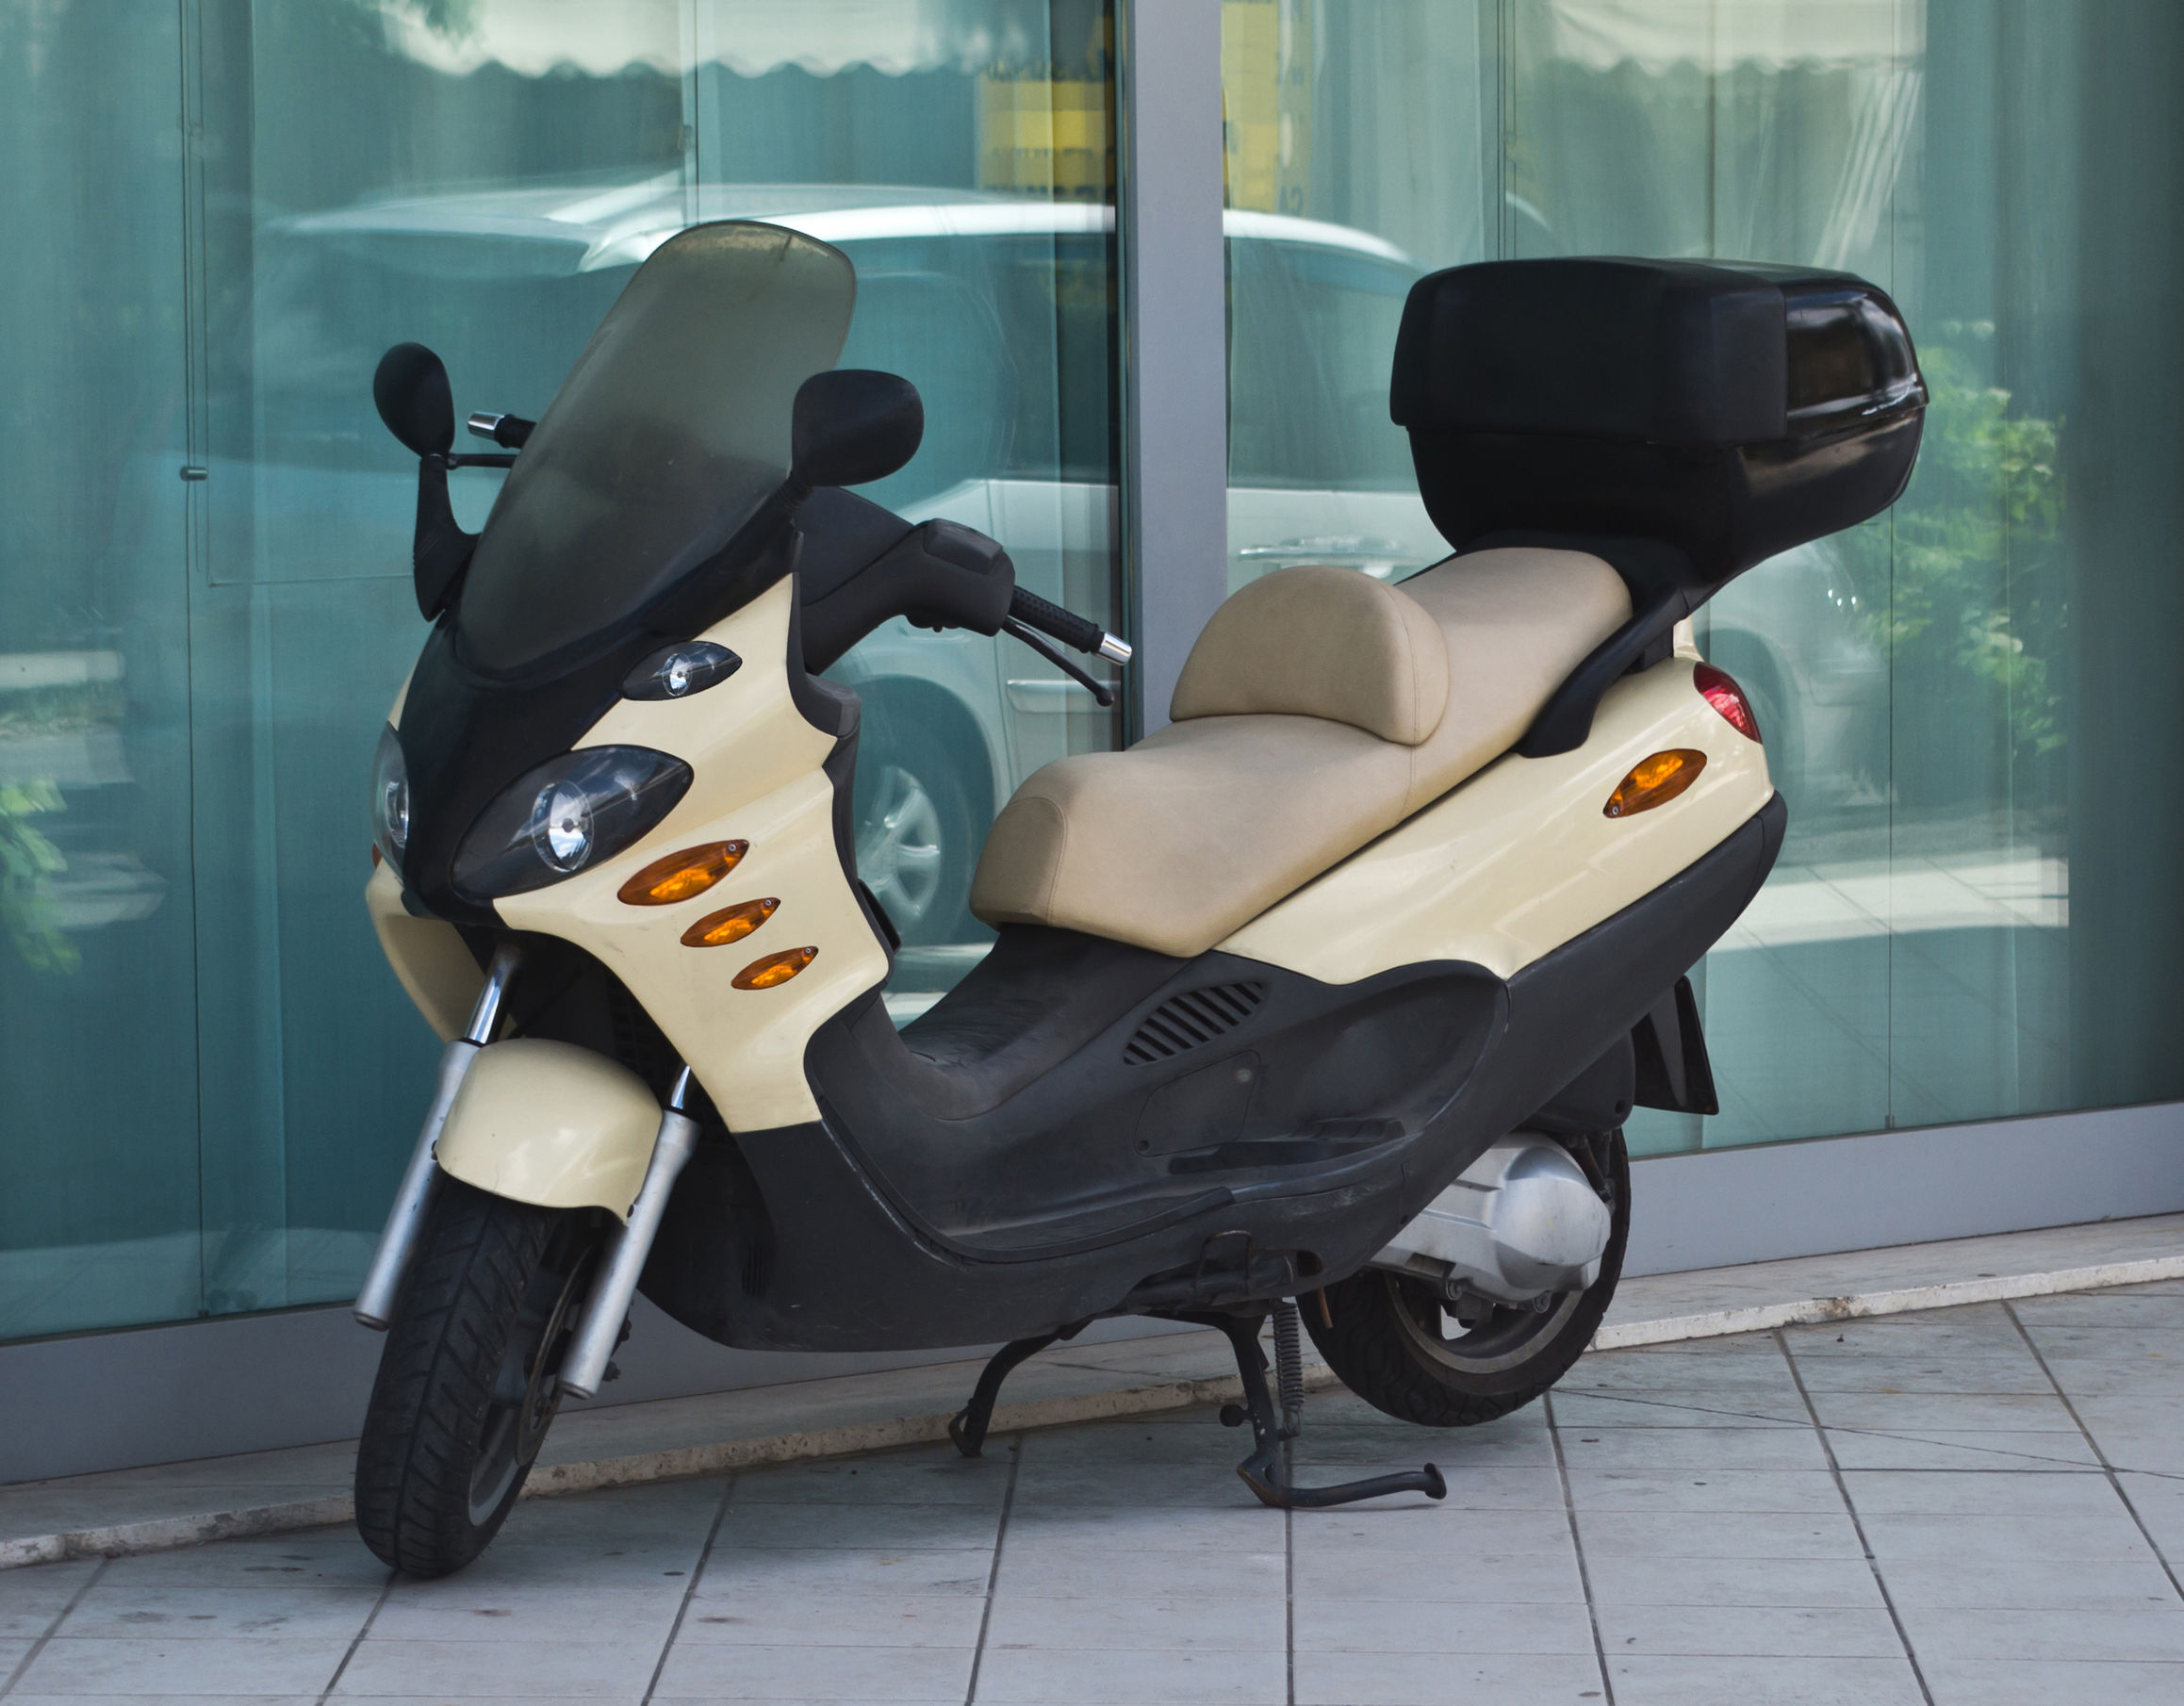 68936746 - futuristic scooter with light brown trunk parked on the sidewalk